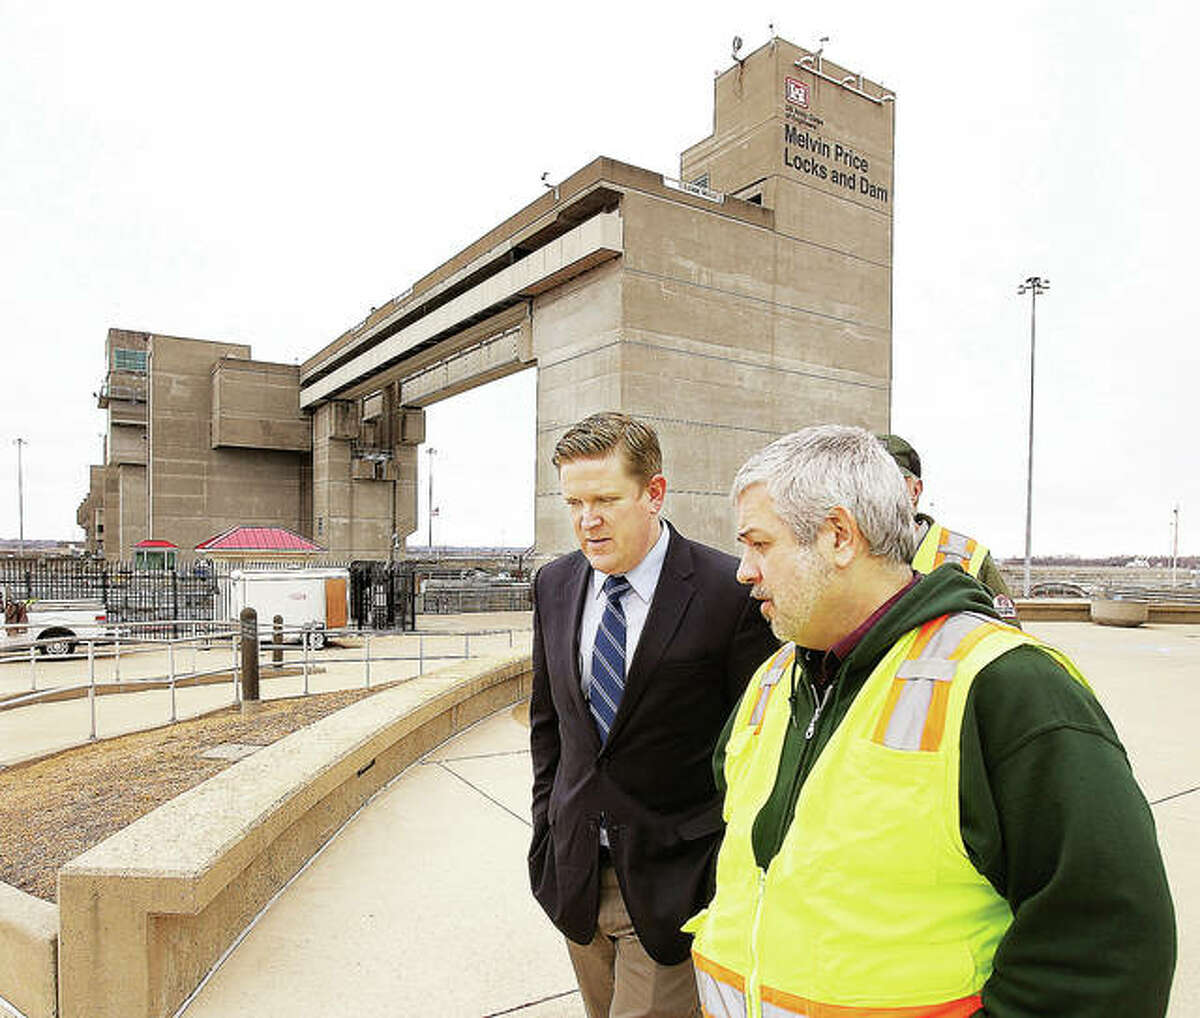 St. Clair County State's Attorney Brendan Kelly, left, talks with Andy Schimpf, right, operations manager for the Mississippi River Project, Tuesday during a tour of the Melvin Price Locks and Dam 26 in Alton. Kelly is running against David Bequette in the primary for the Democratic nomination, as a candidate for U.S. Representative for Illinois' 12th Congressional District. Republican Mike Bost currently holds the U.S. Representative seat, but has a challenger in the primary.